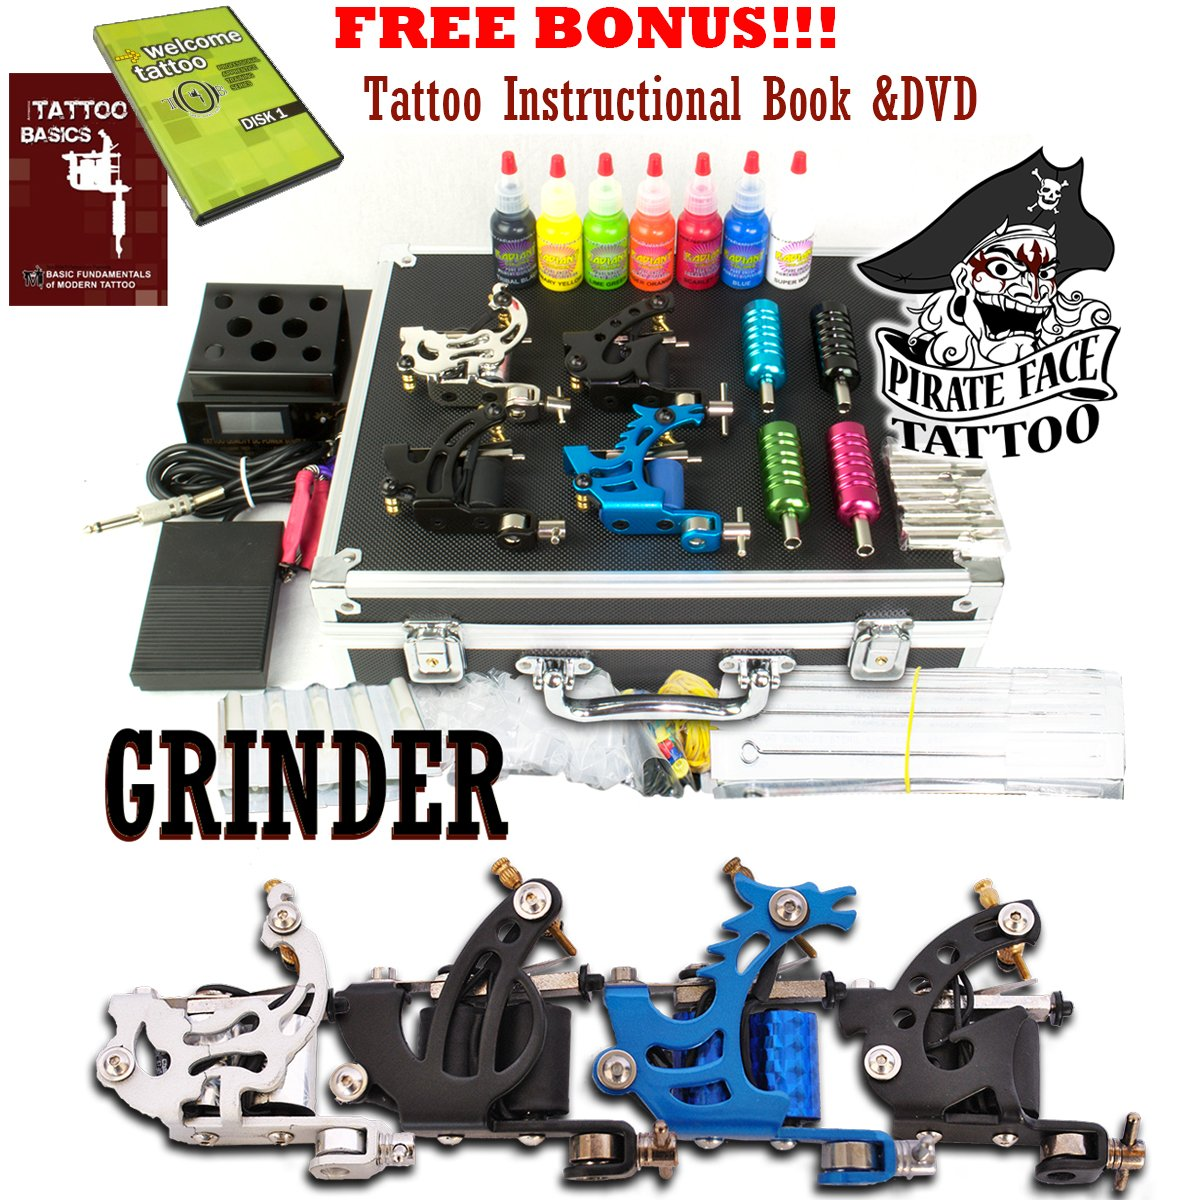 GRINDER Tattoo Kit by Pirate Face Tattoo / 4 Tattoo Machine Guns - Power Supply / 7 Ink by Radiant Colors - Made in the USA/LCD Power Supply / 50 Needles/PLUS Accessories by Pirate Face Tattoo